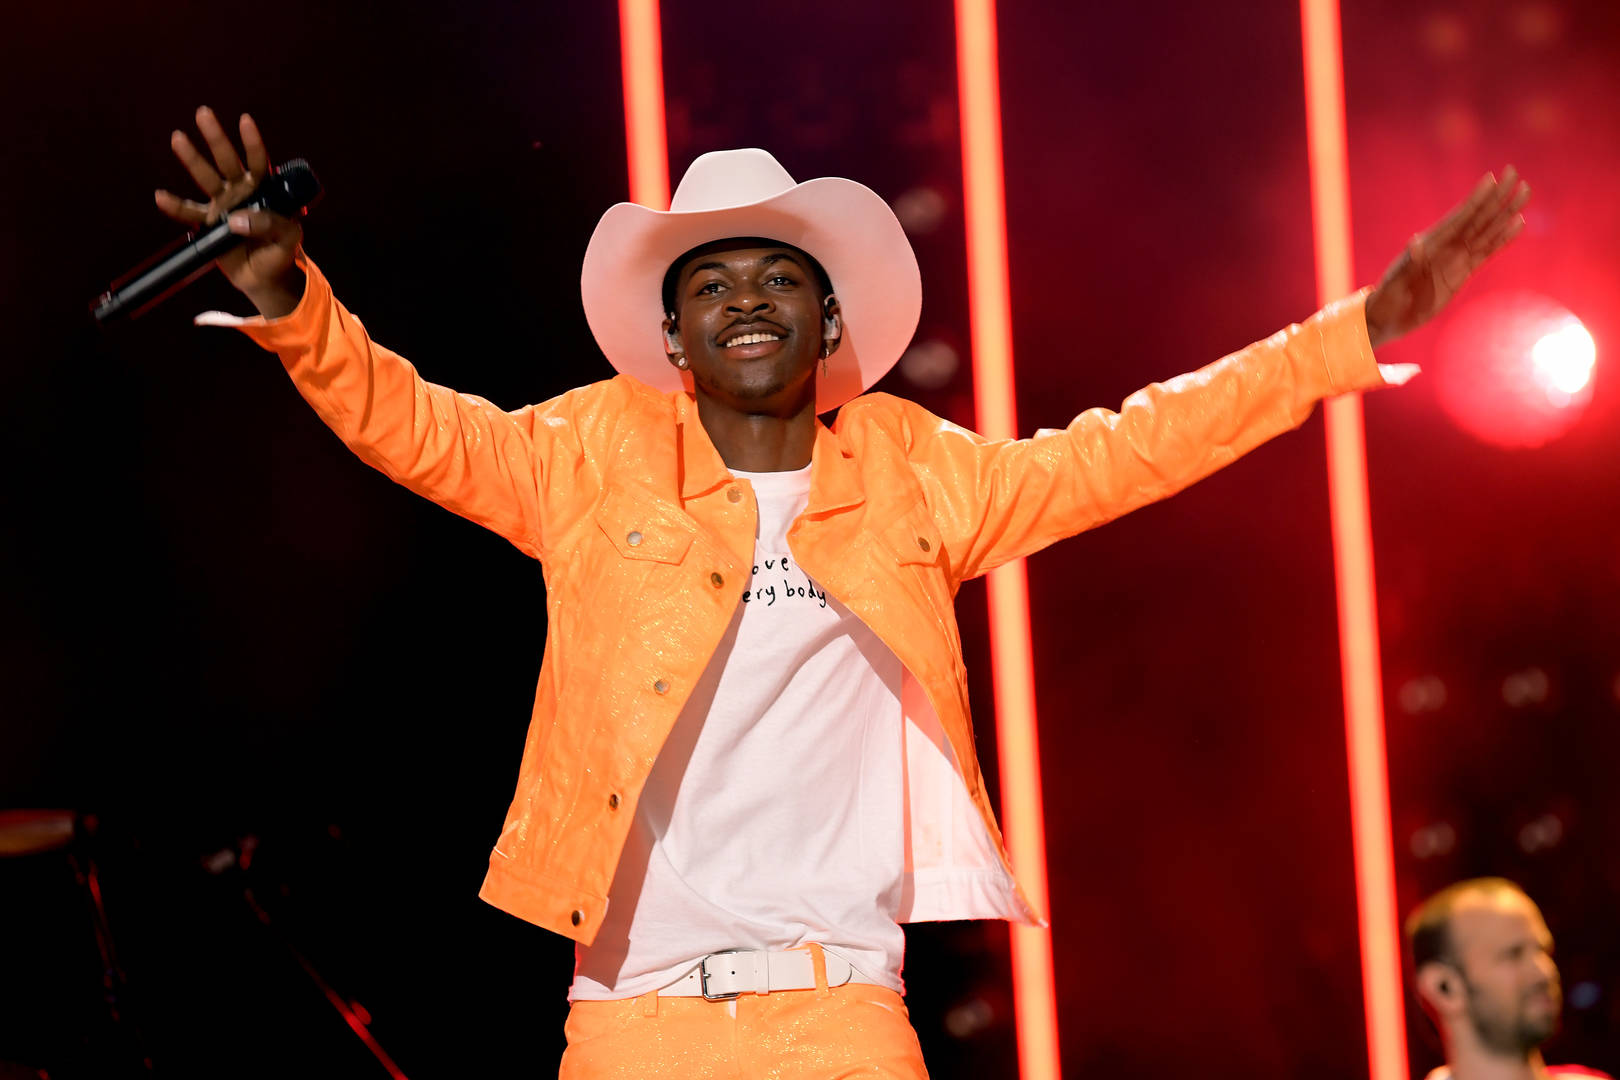 Young Thug said Lil Nas X shouldn't have publicly come out